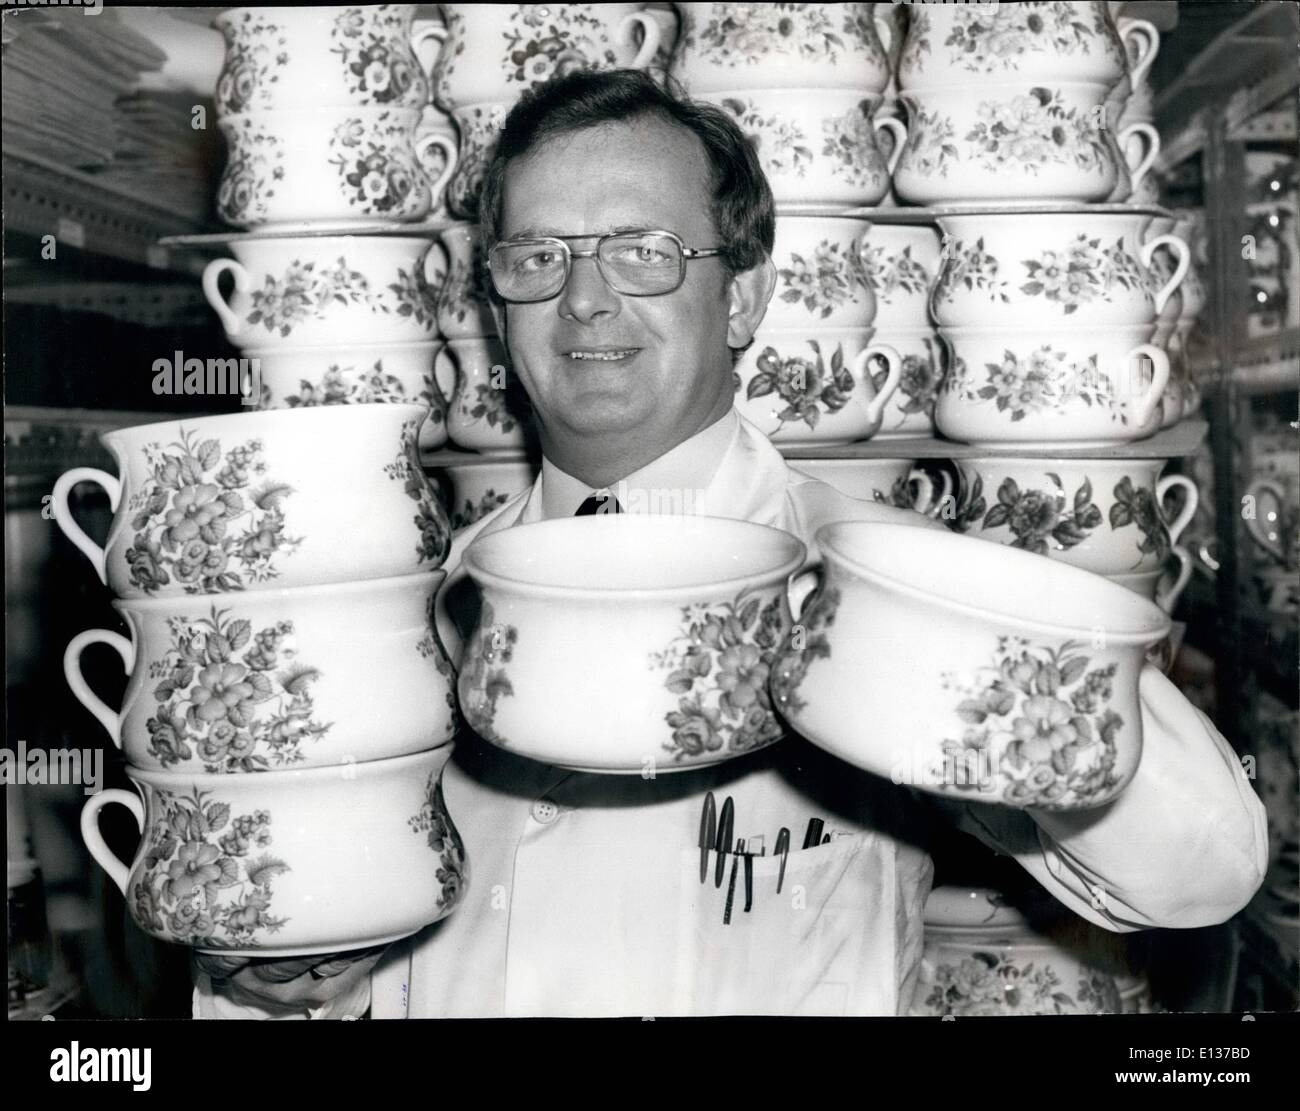 Feb. 29, 2012 - Peter Chadwick (M. Director), with some of his many pots. - Stock Image